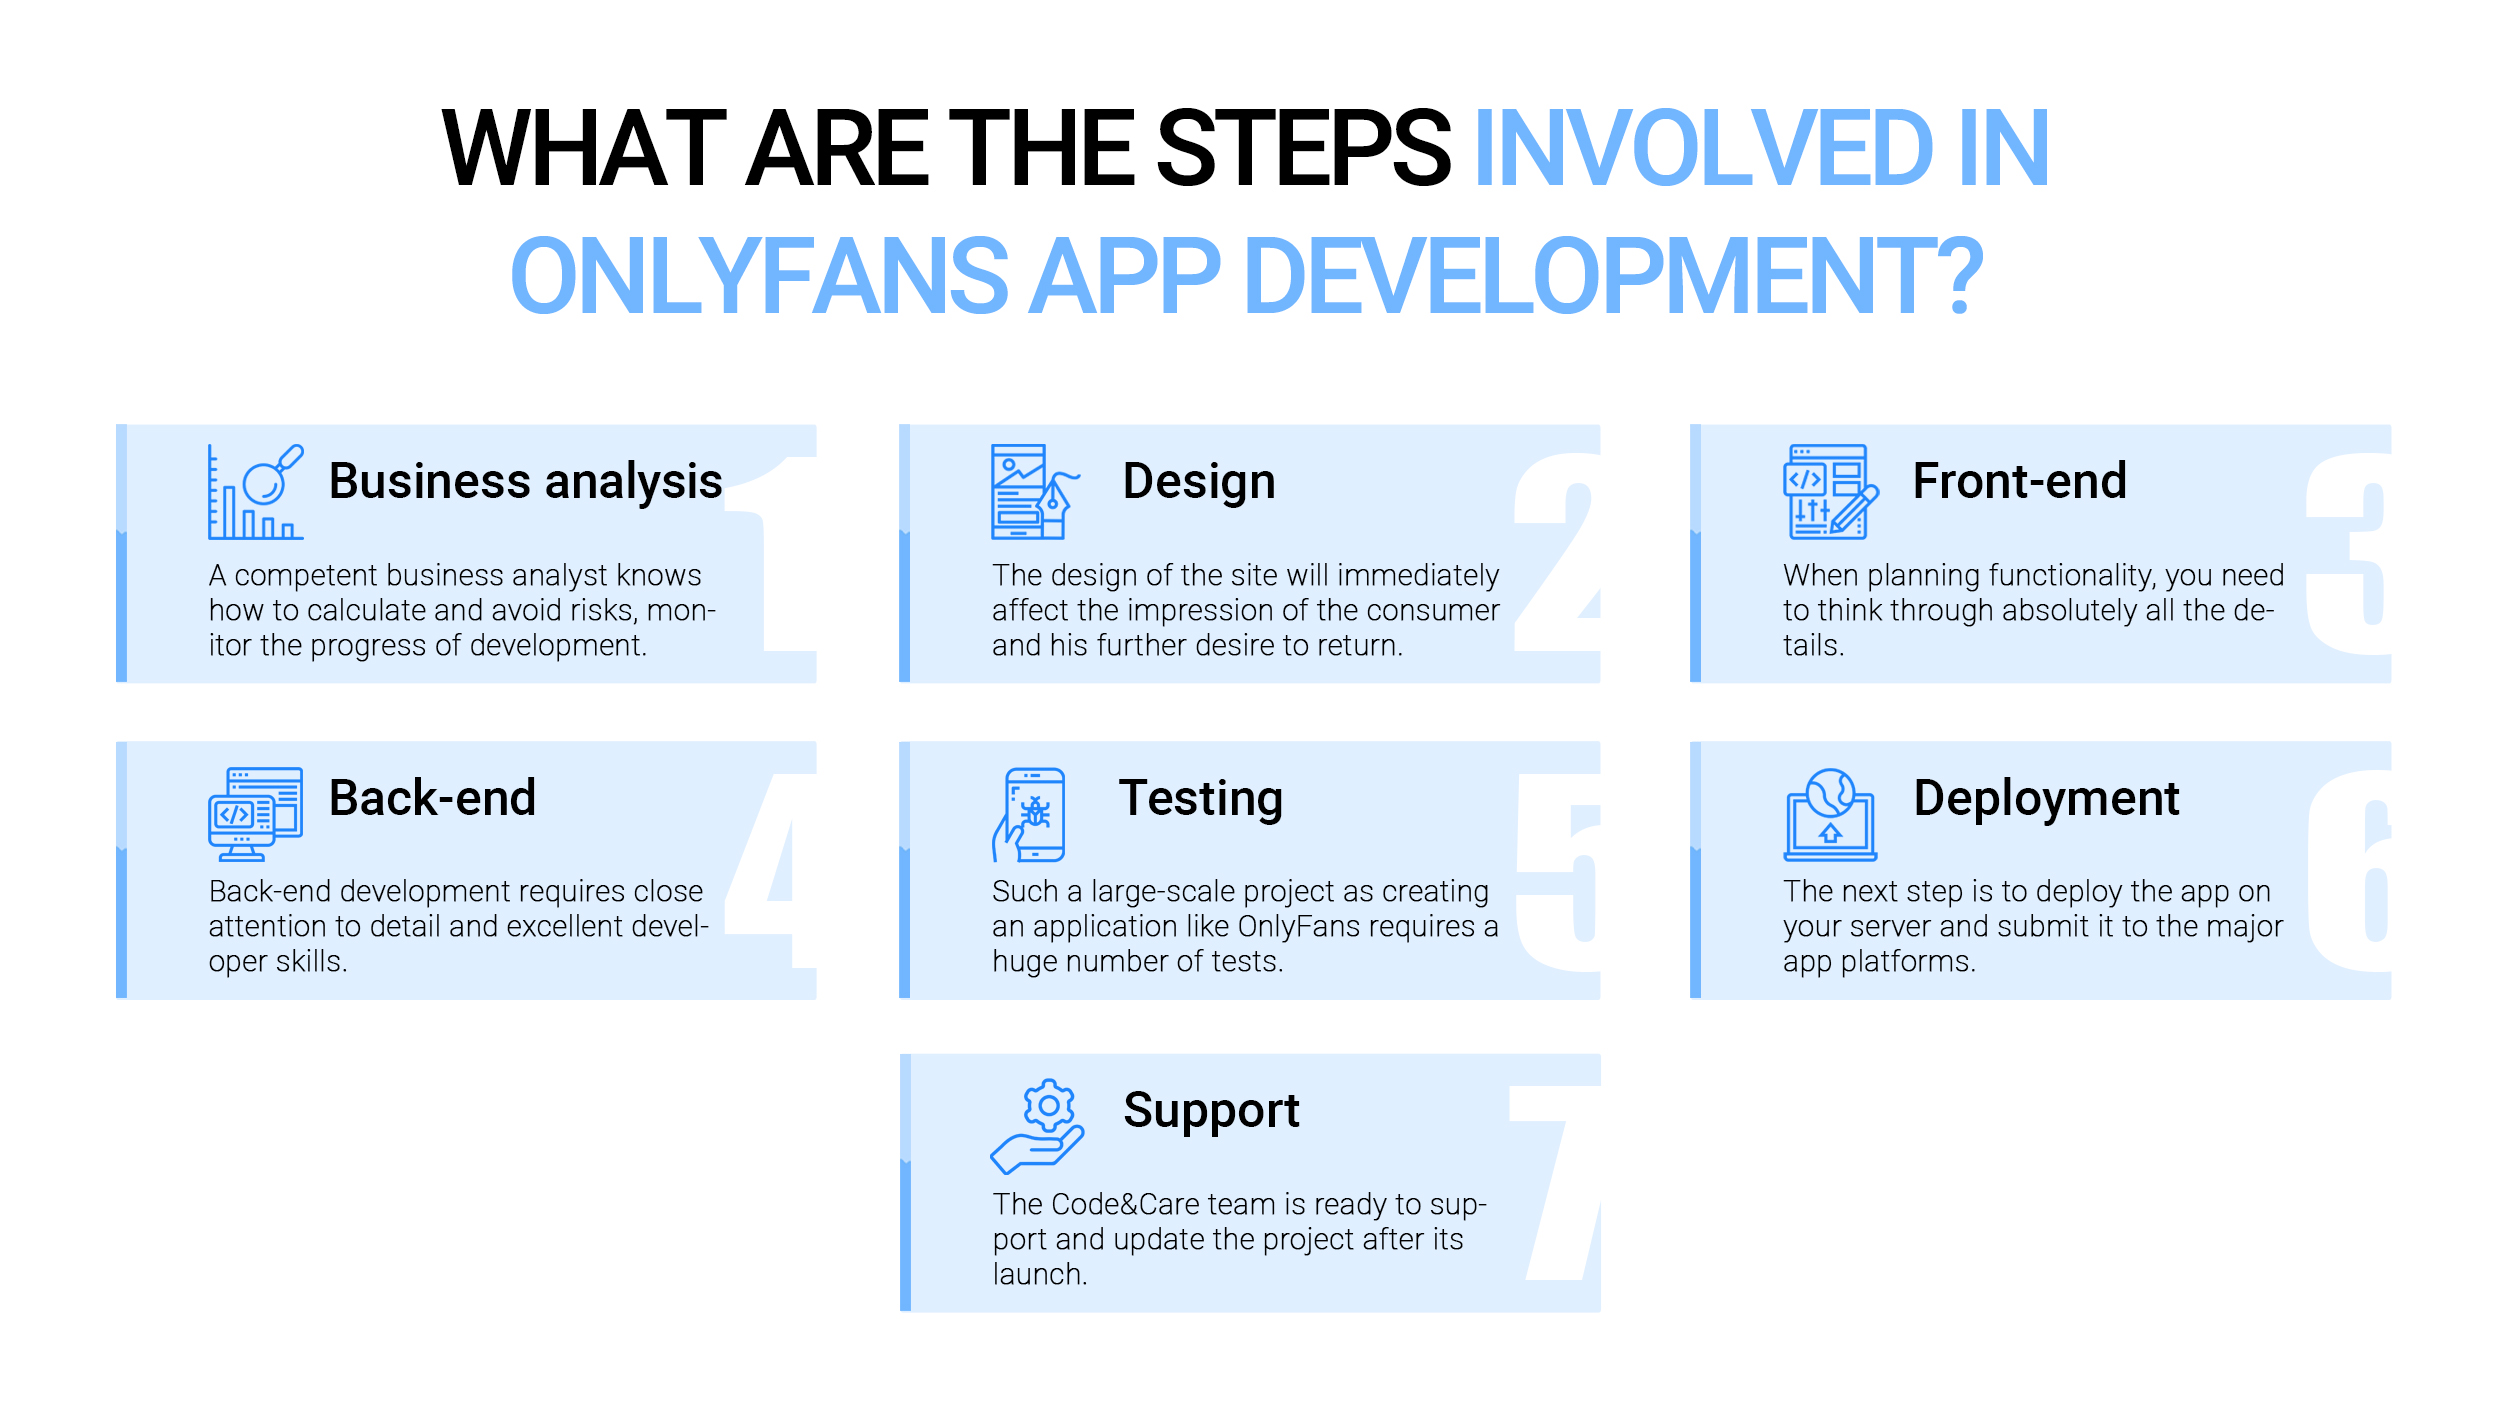 What are the steps involved in OnlyFans app development